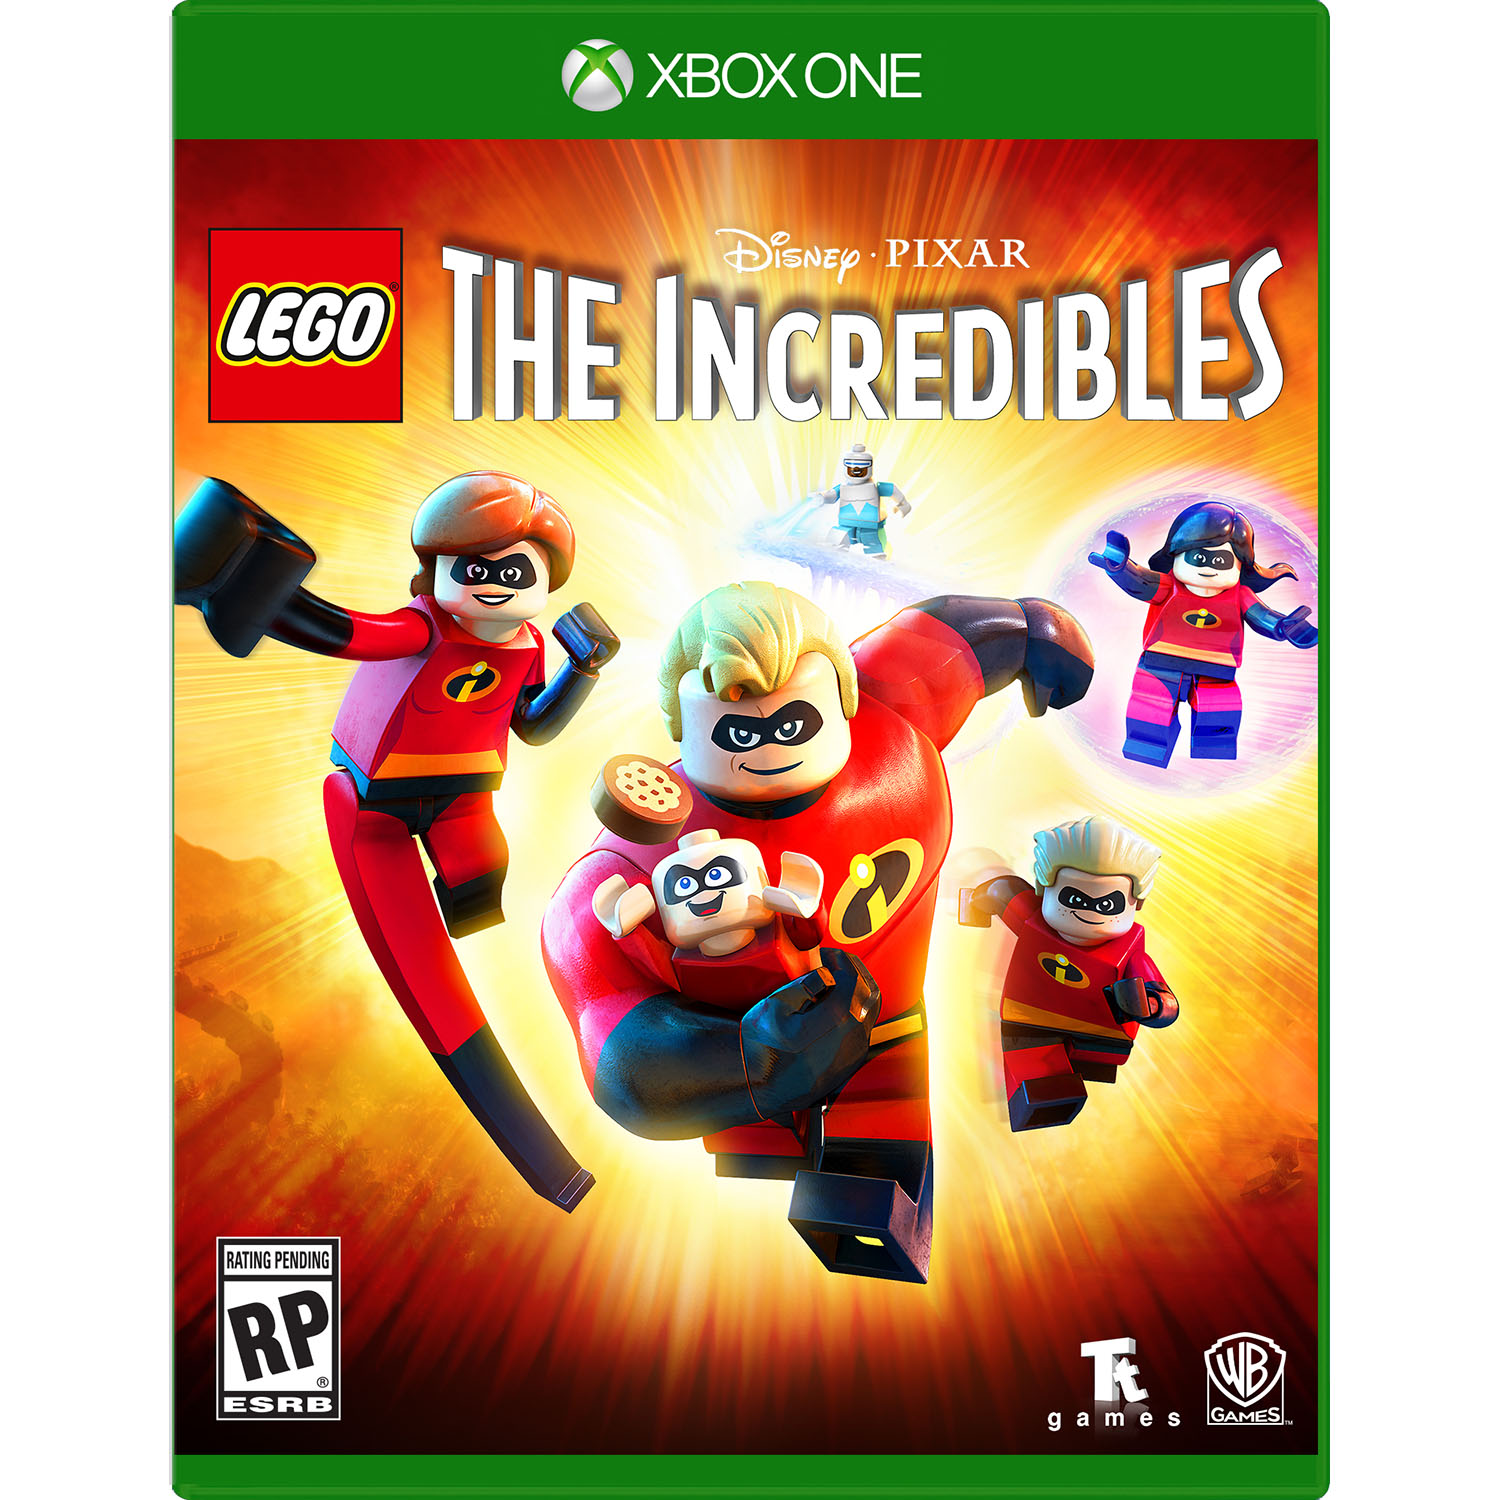 LEGO Incredibles, Warner Bros, Xbox One, 883929633005